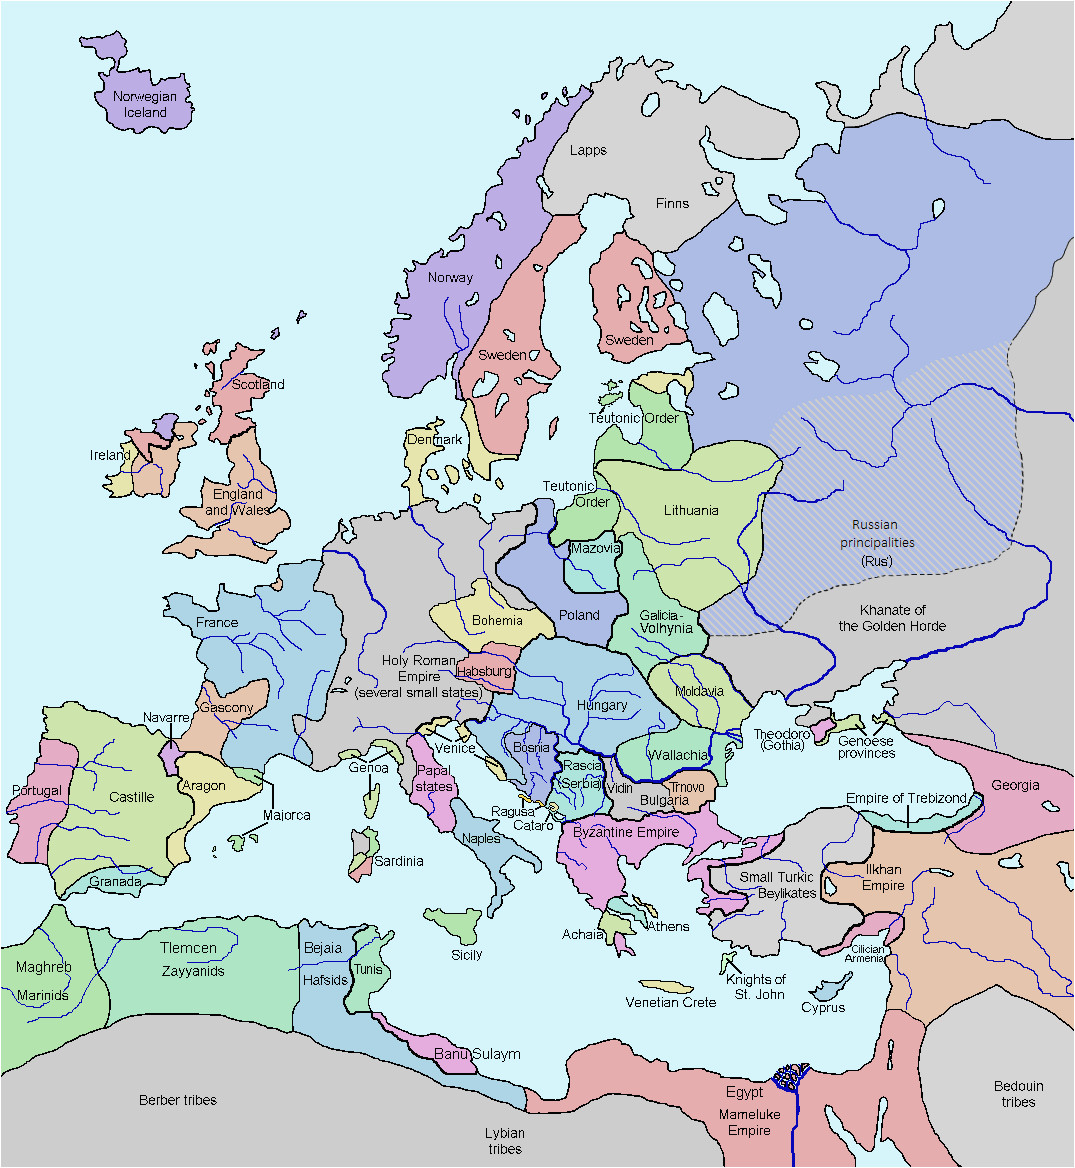 Europe Map 1912 atlas Of European History Wikimedia Commons